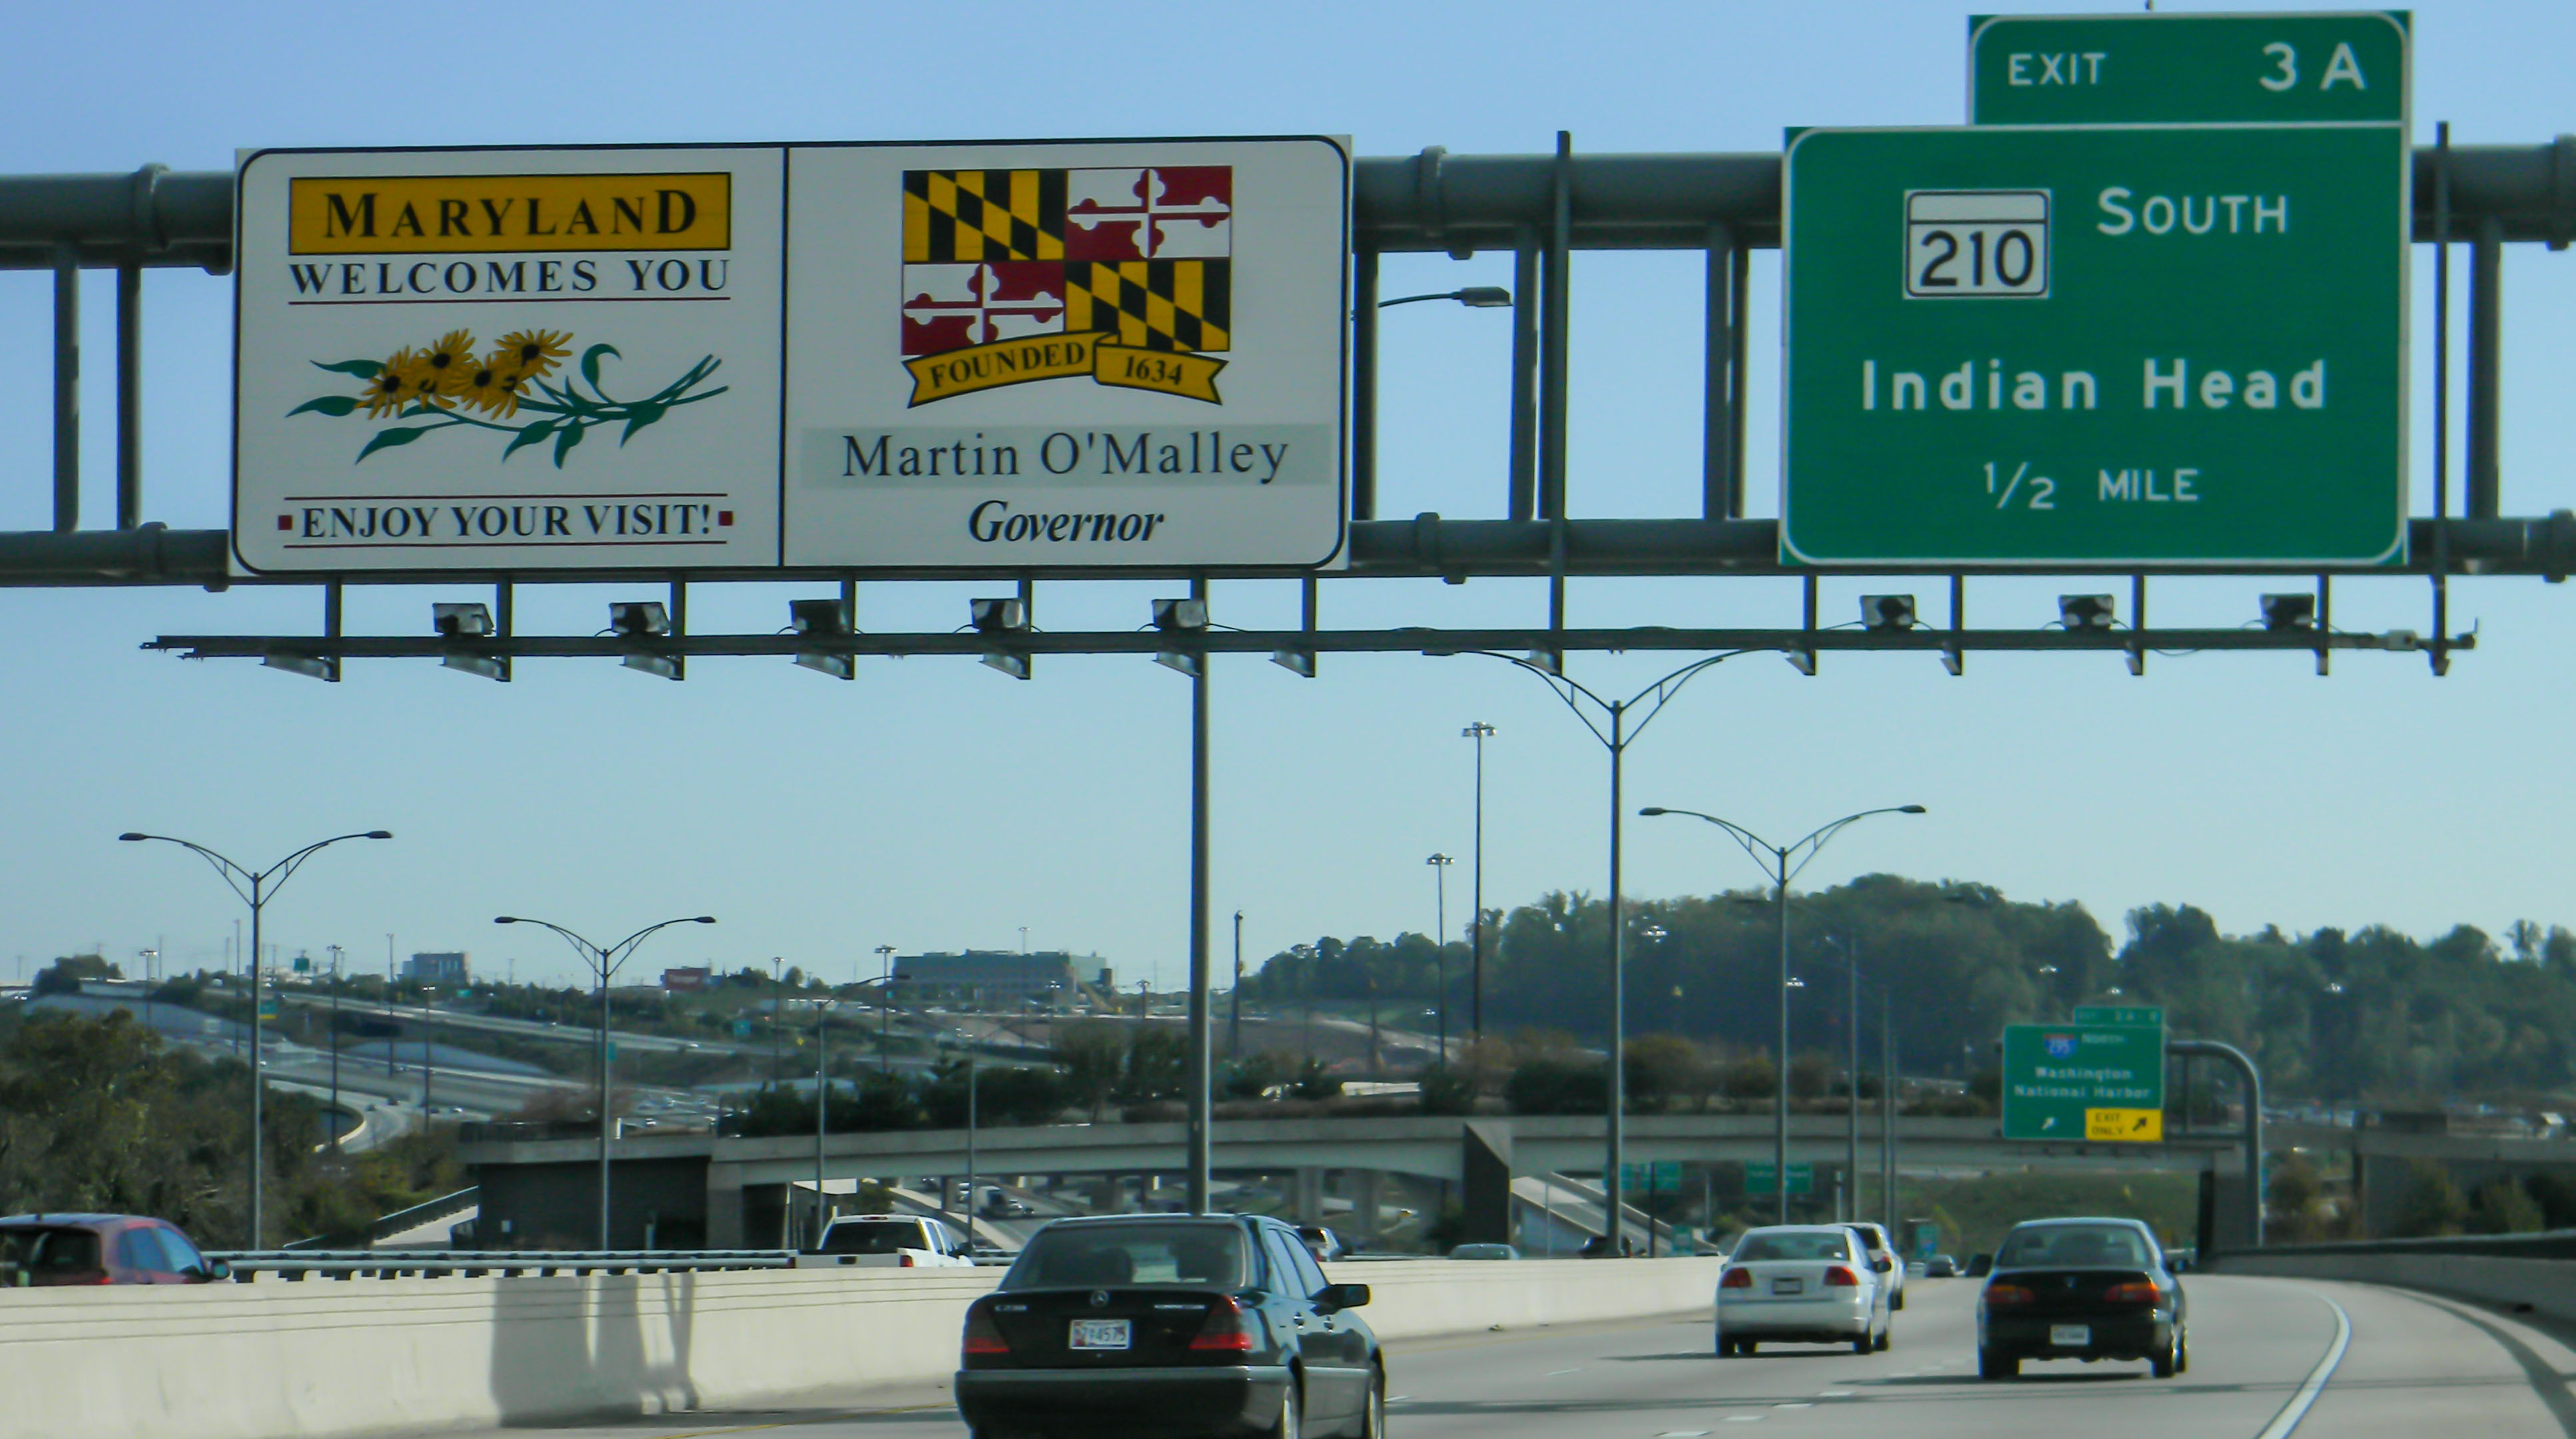 A welcome to Maryland sign